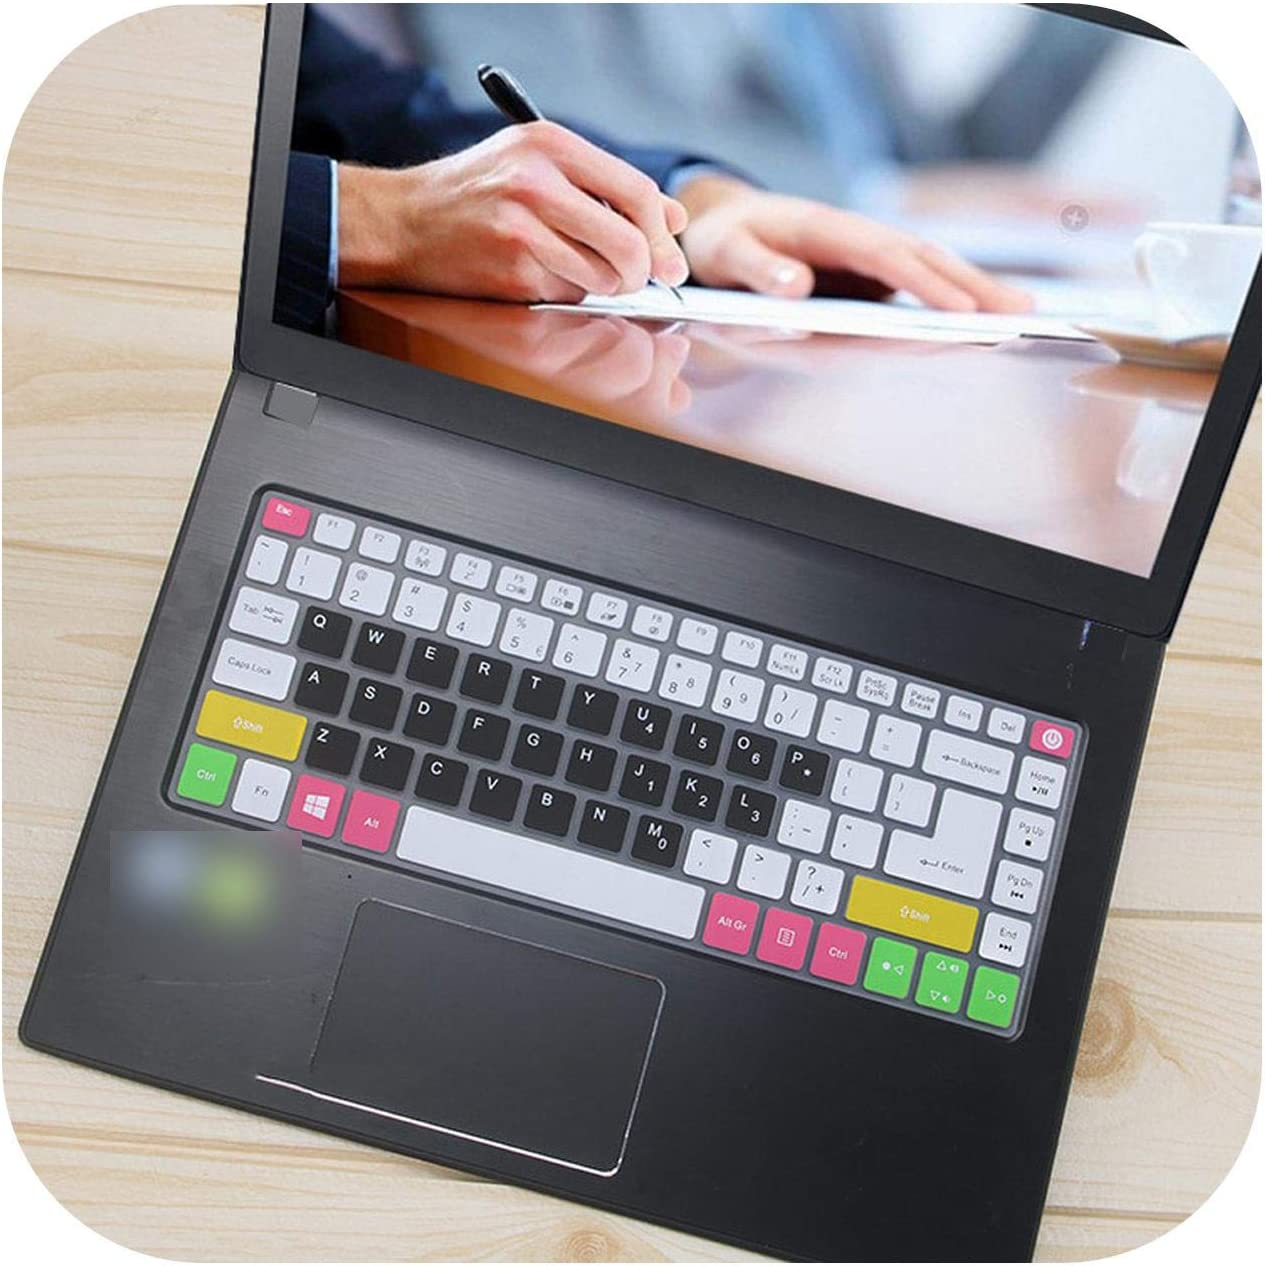 Film Pour Clavier 14 Inch Silicone Laptop Keyboard Cover Protector Skin for Acer Aspire E14 Sf314 Swift 3 E5 432G K4000 Tmp248 Tmtx40 Tmx349-Candyblack-